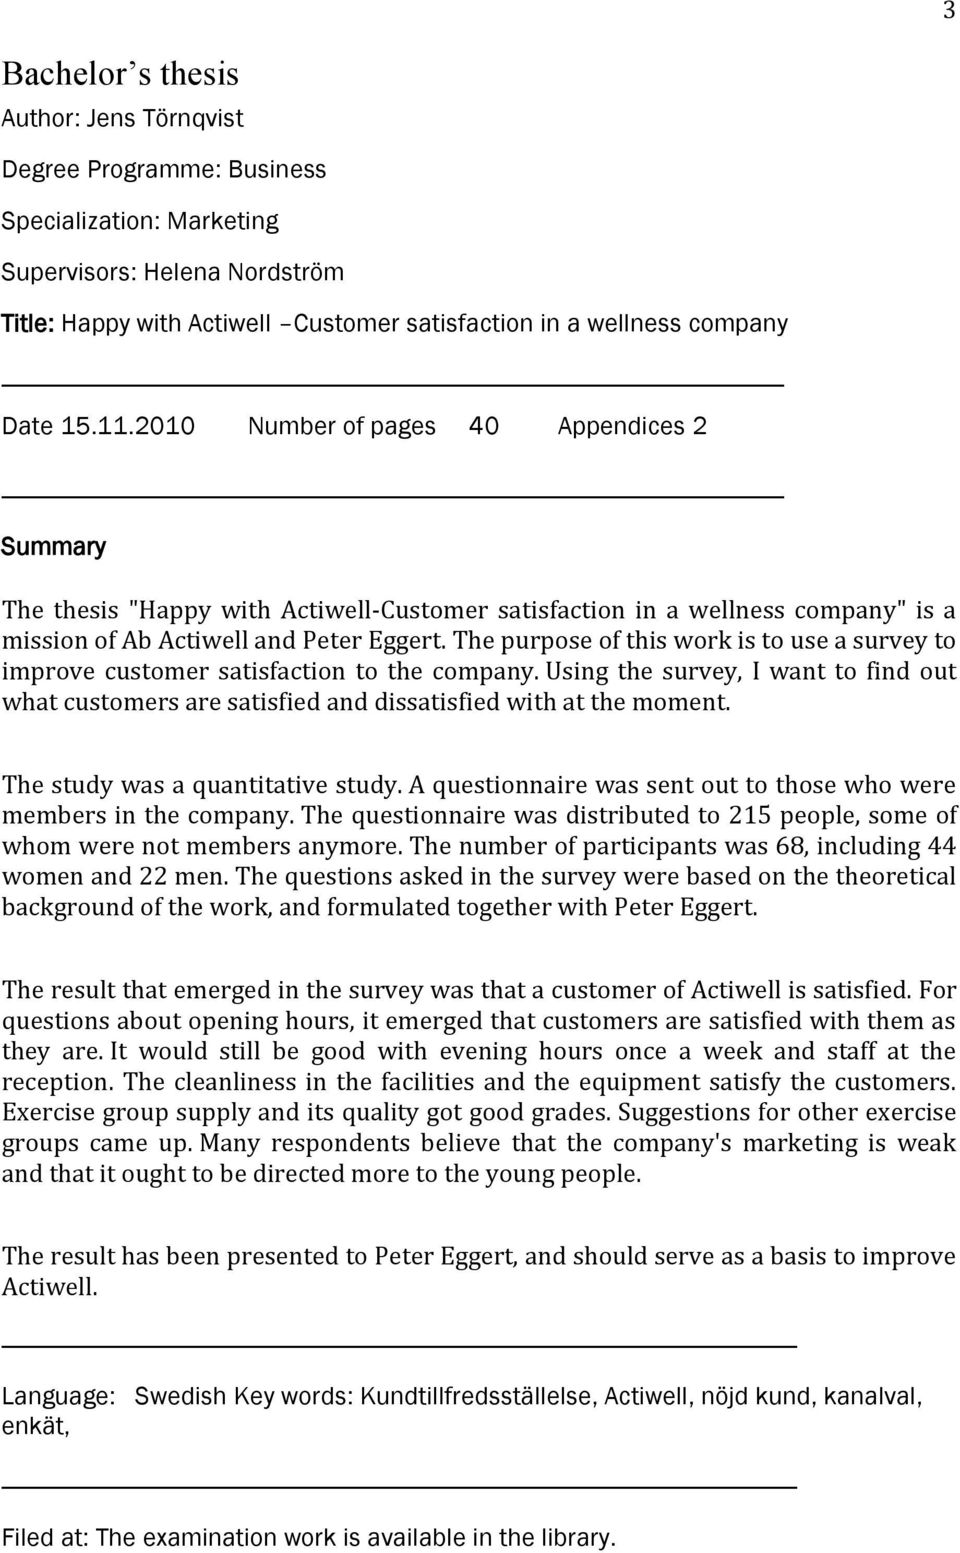 The purpose of this work is to use a survey to improve customer satisfaction to the company. Using the survey, I want to find out what customers are satisfied and dissatisfied with at the moment.